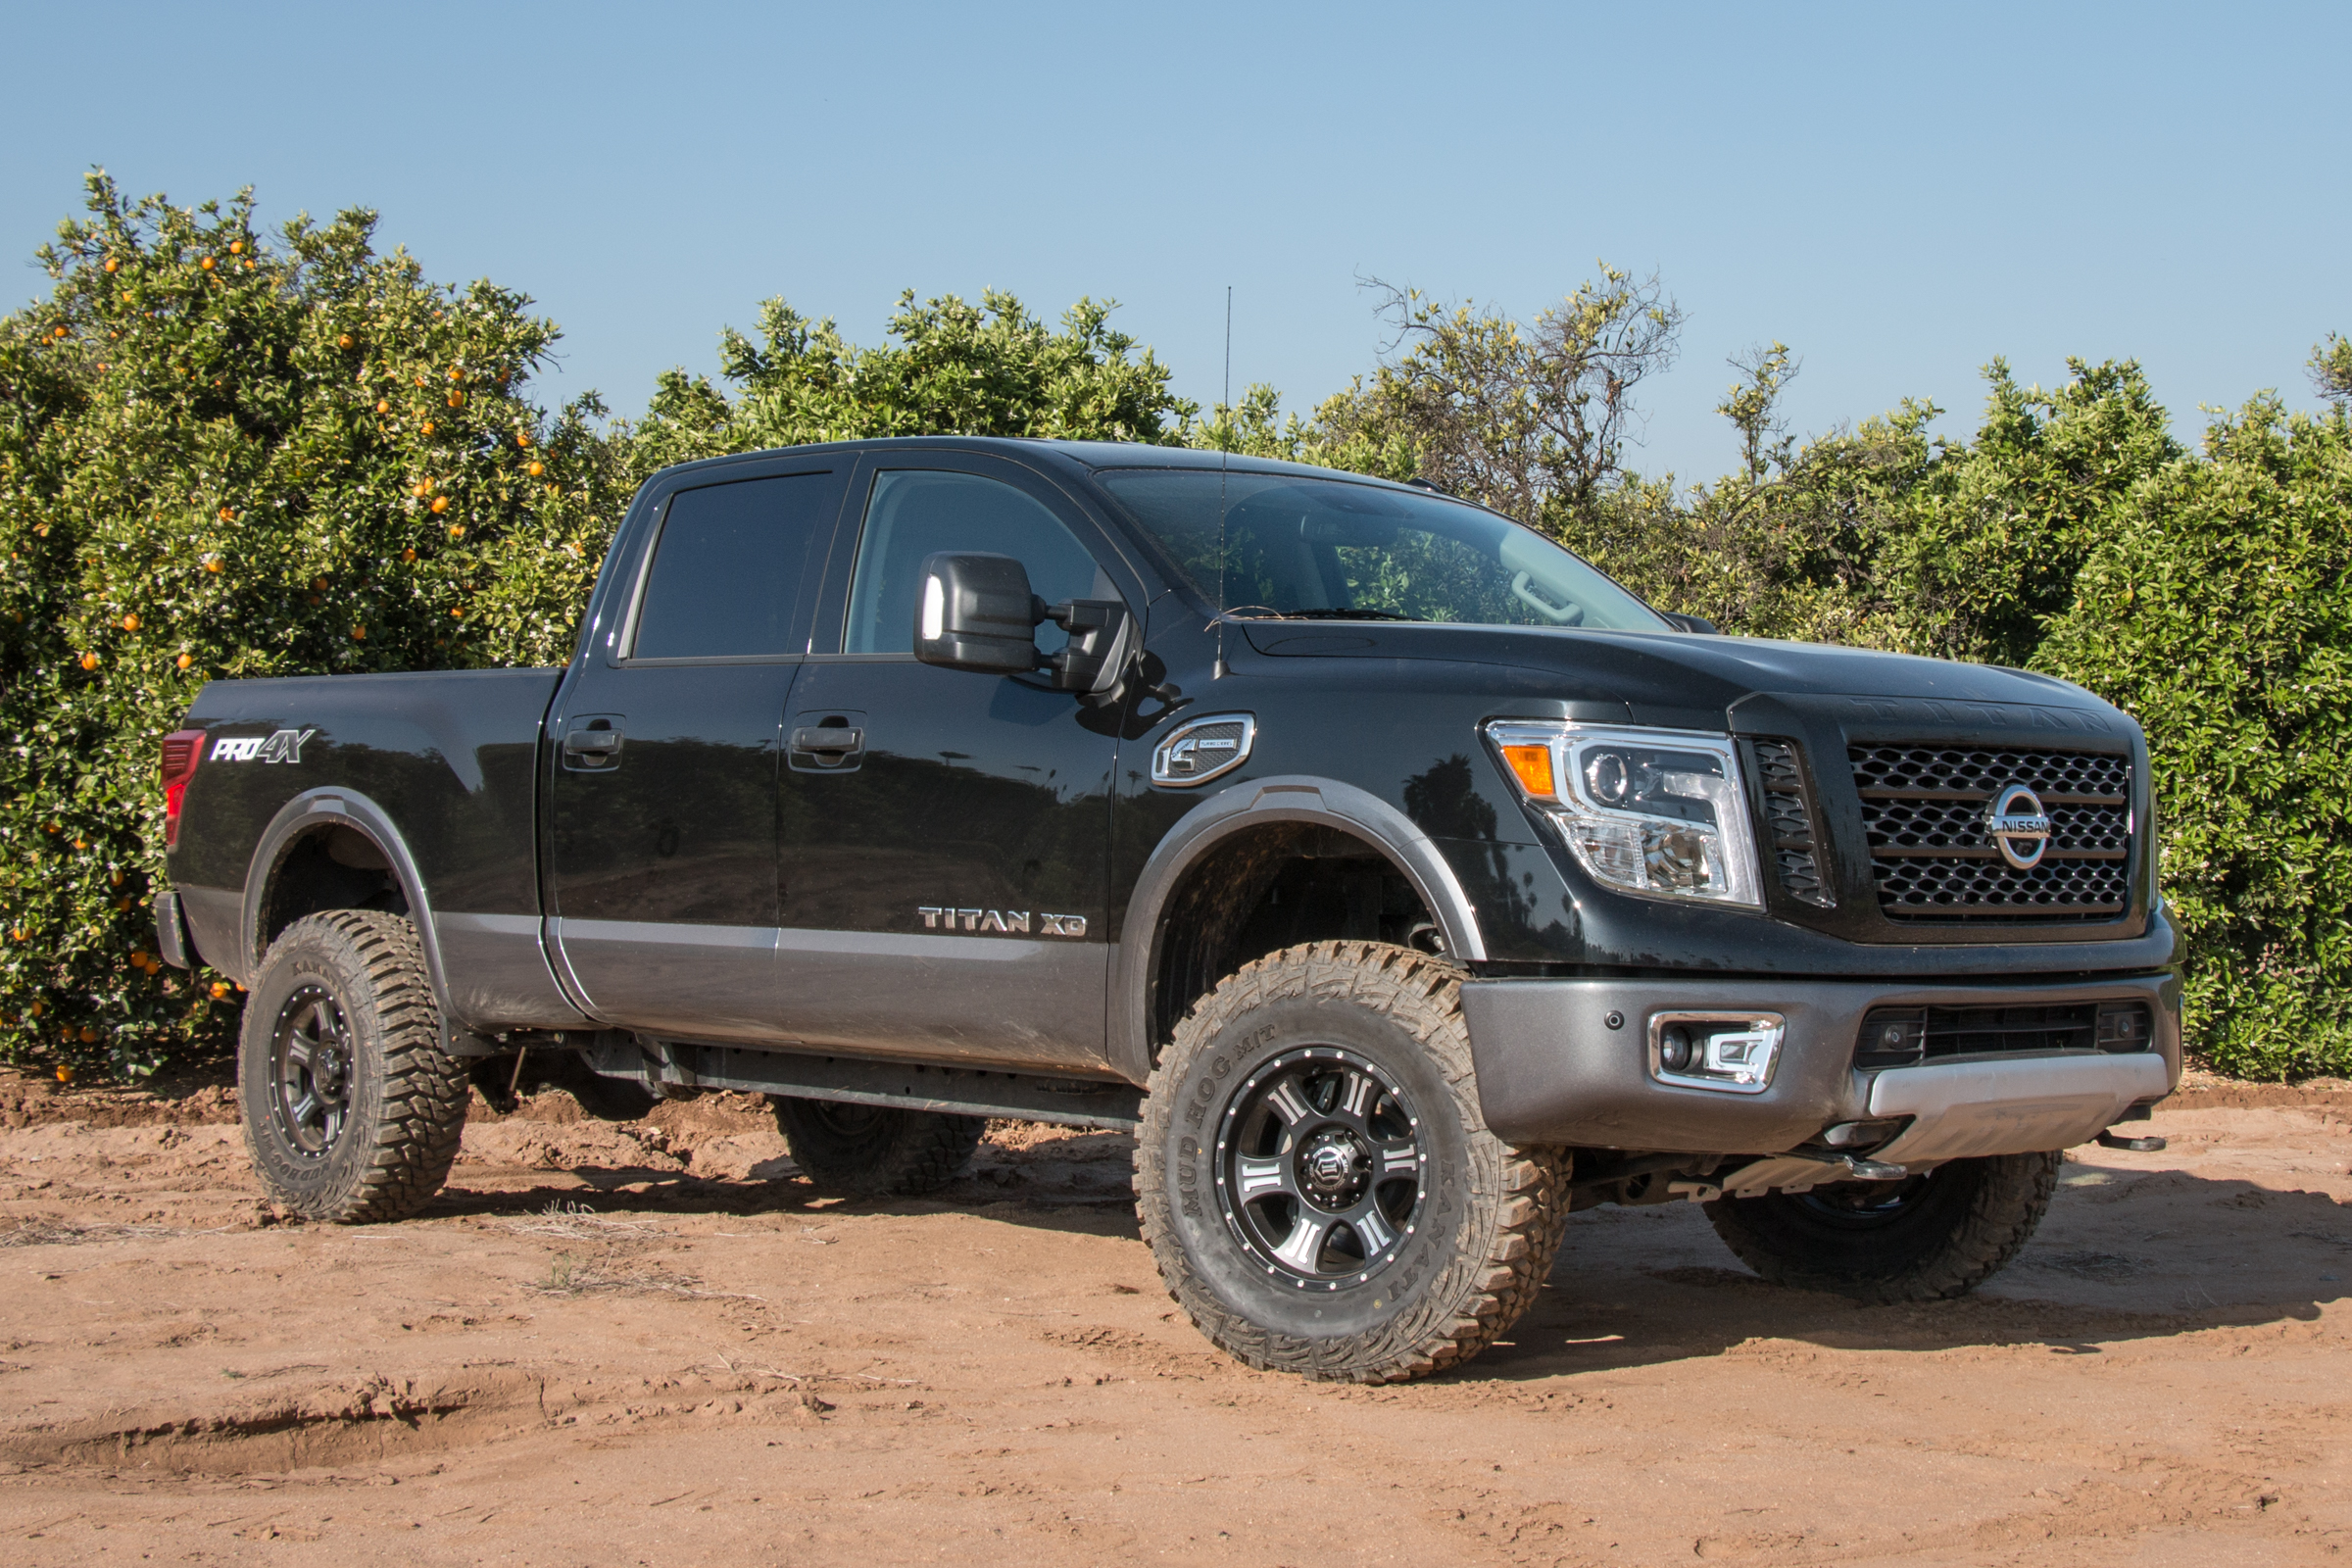 Nissan Titan Lifted >> New 2016 Nissan Titan XD Lift Kits Available | STILLEN Garage